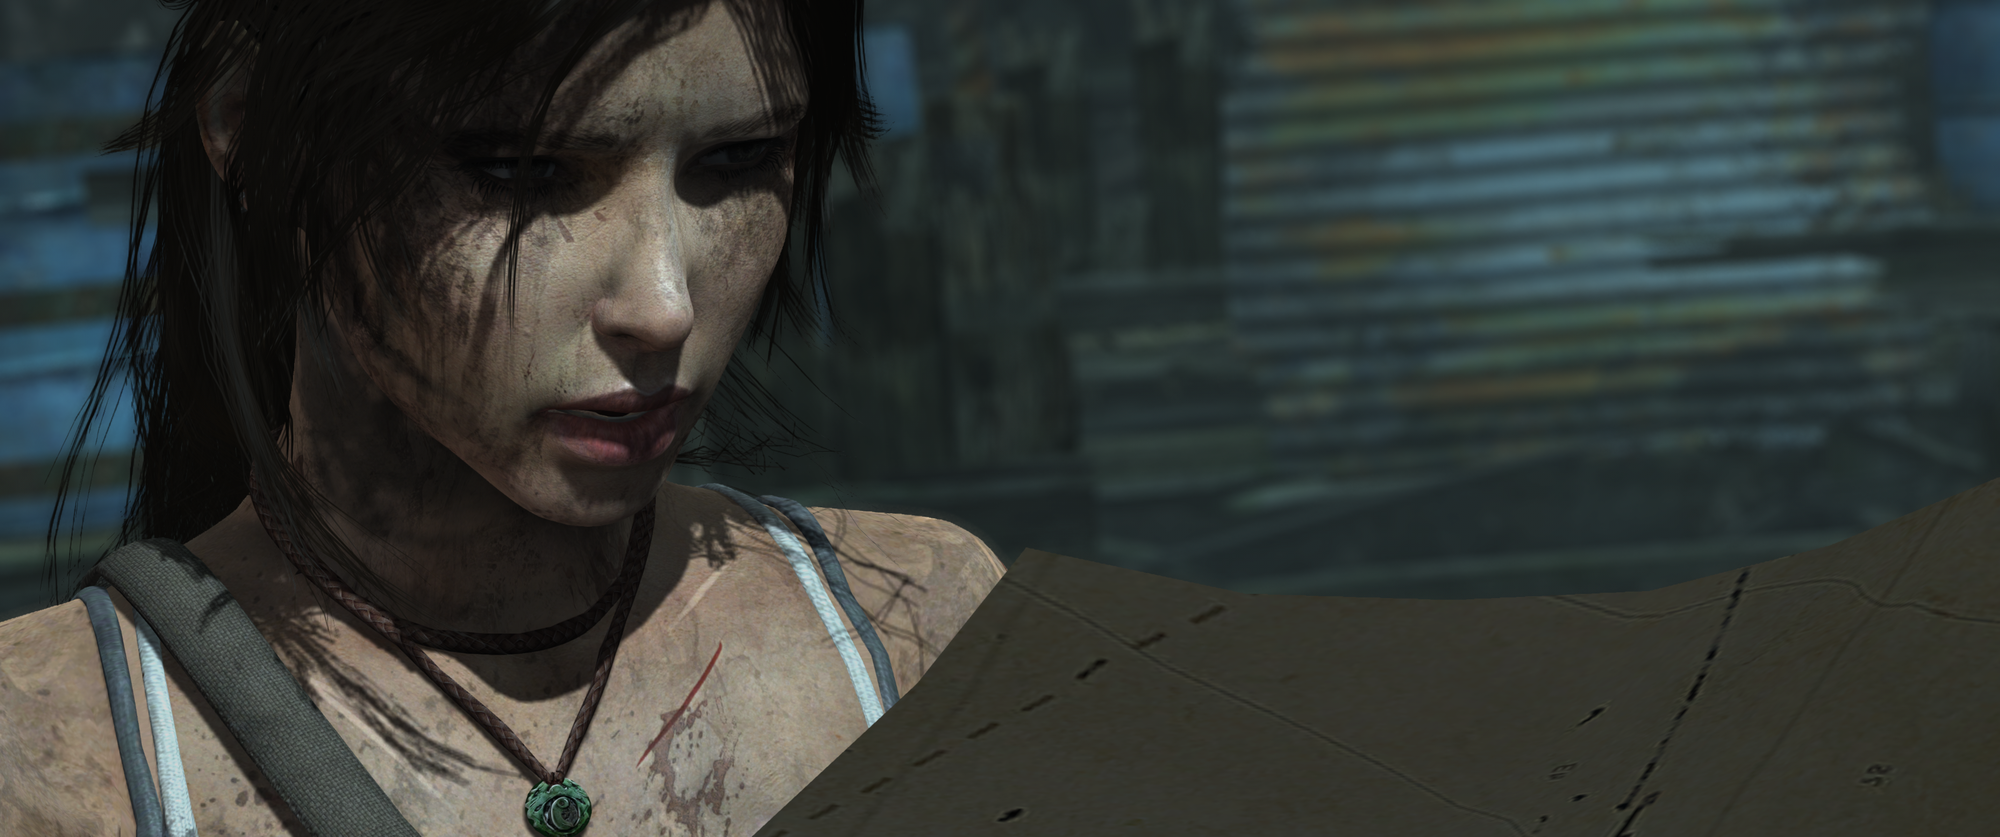 TombRaider_2018_07_25_18_18_45_054.png